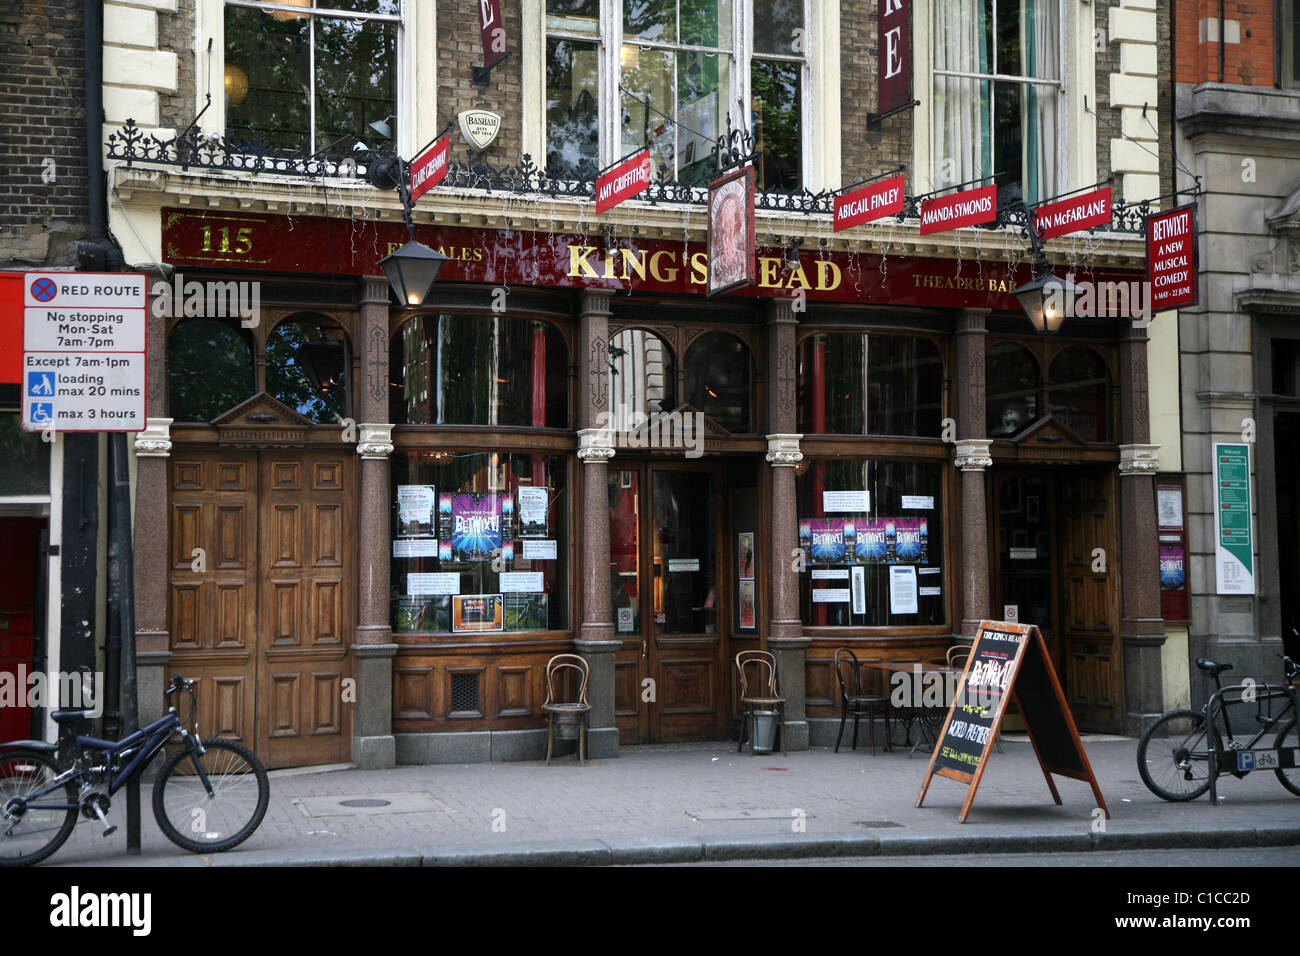 General View gv of the Kings Head Theatre Pub in Islington, London, England. - Stock Image